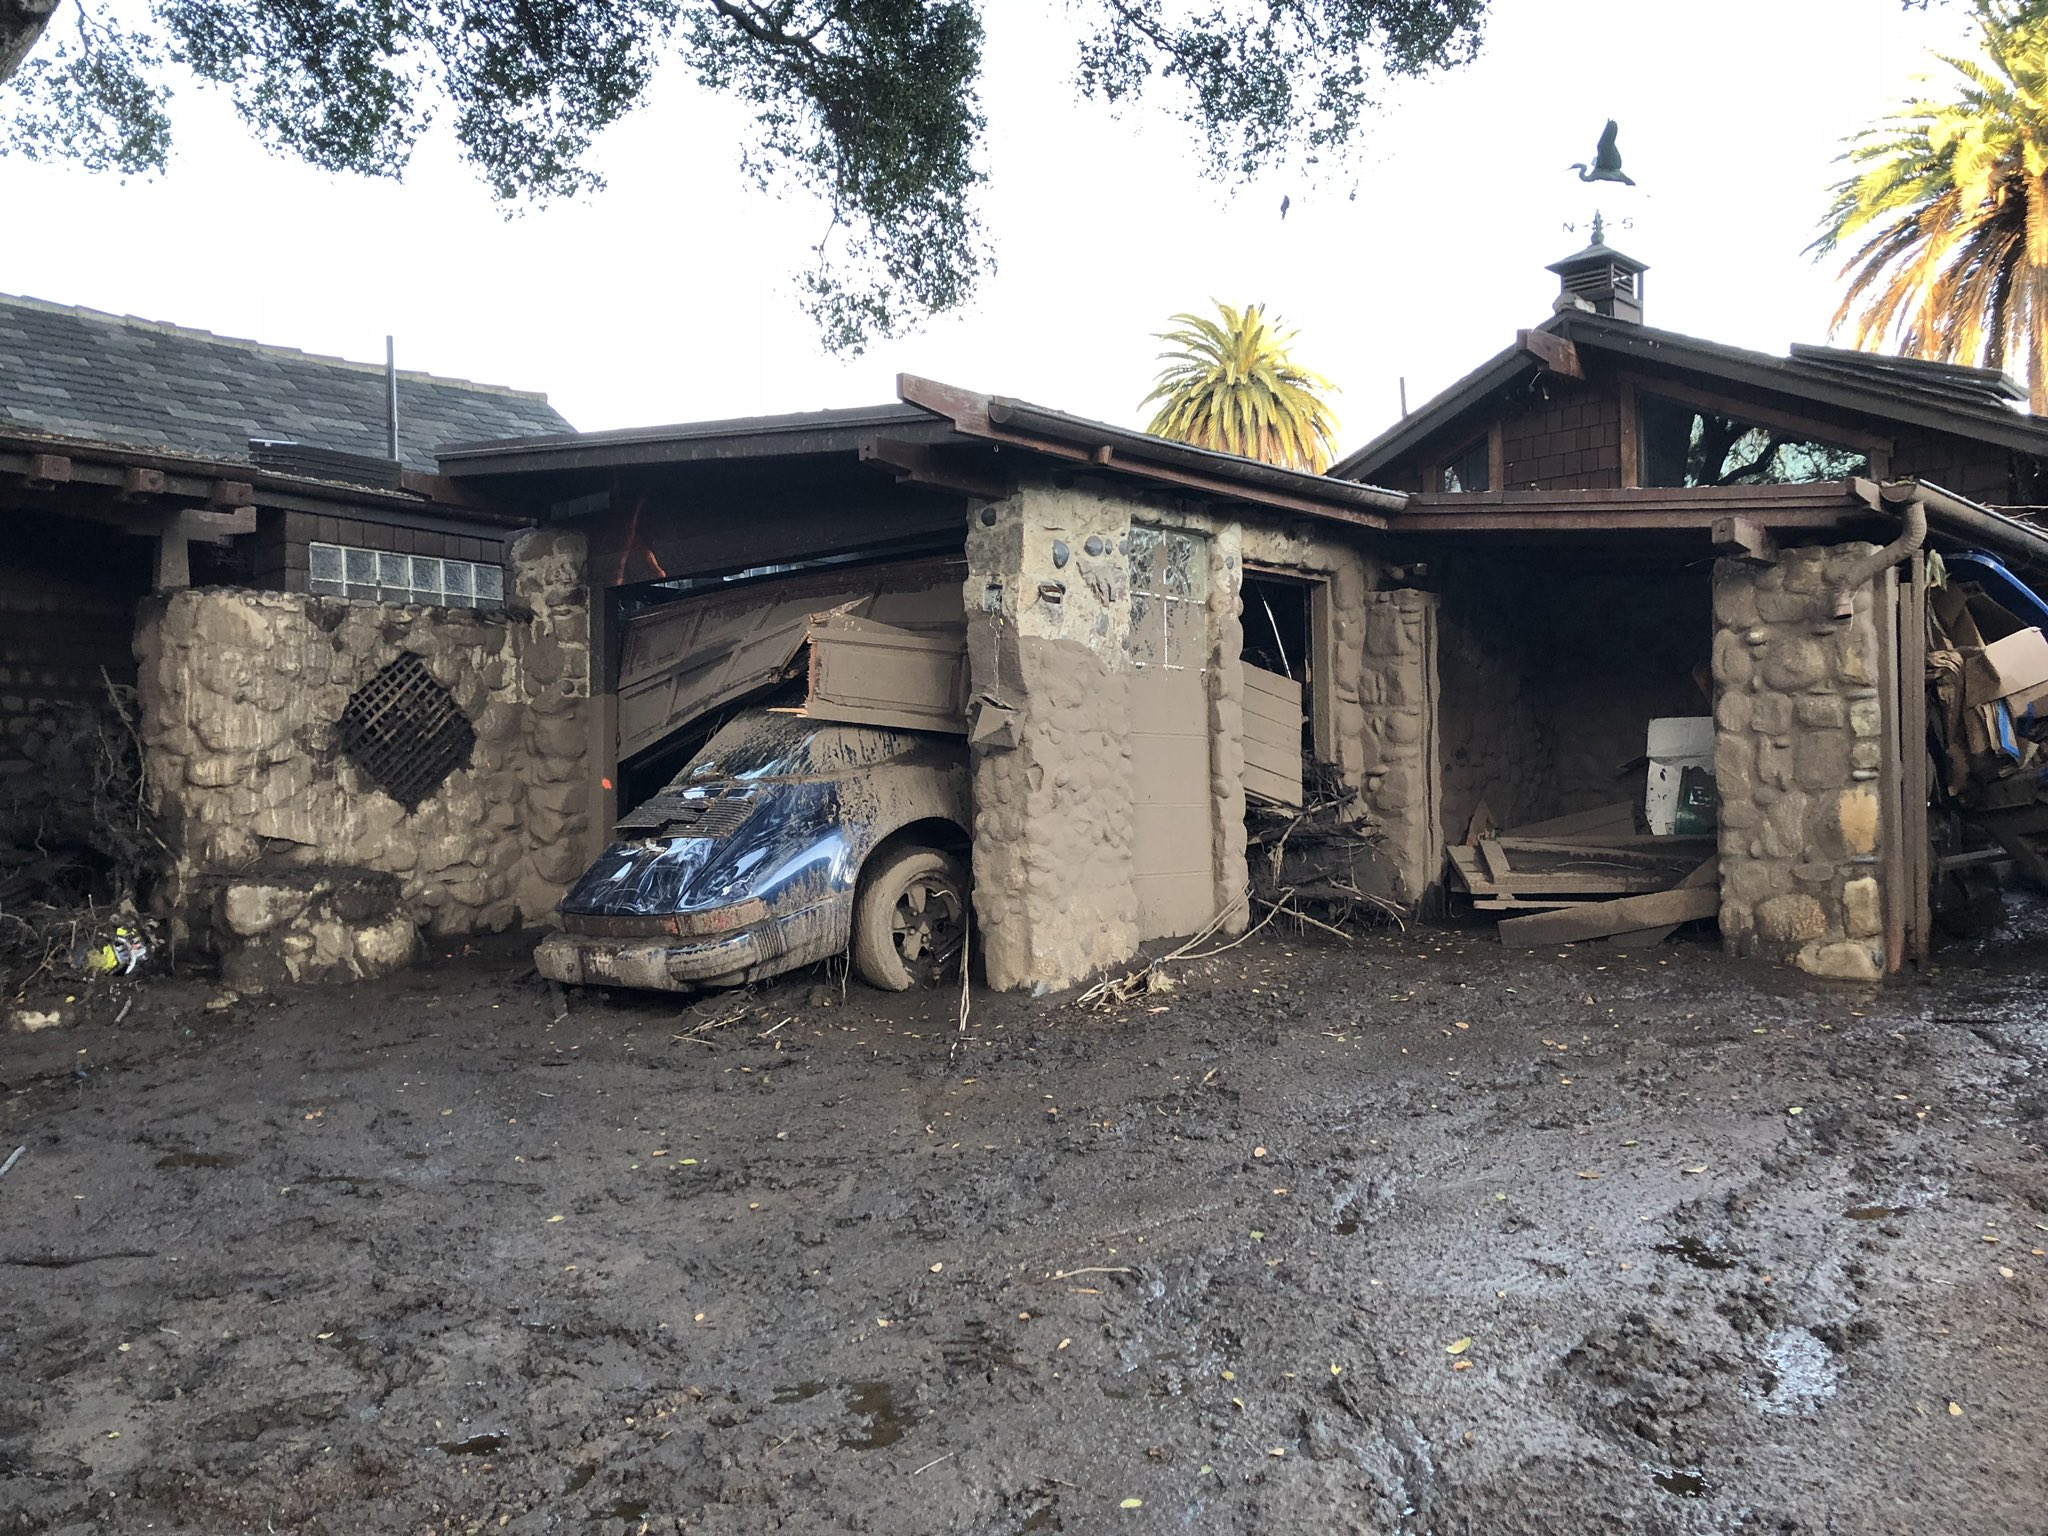 Deadly runoff of mud, boulders, and debris destroyed homes that lined Montecito Creek near East Valley Road. (Photo & Caption: Mike Eliason, Santa Barbara County Fire Dept.)